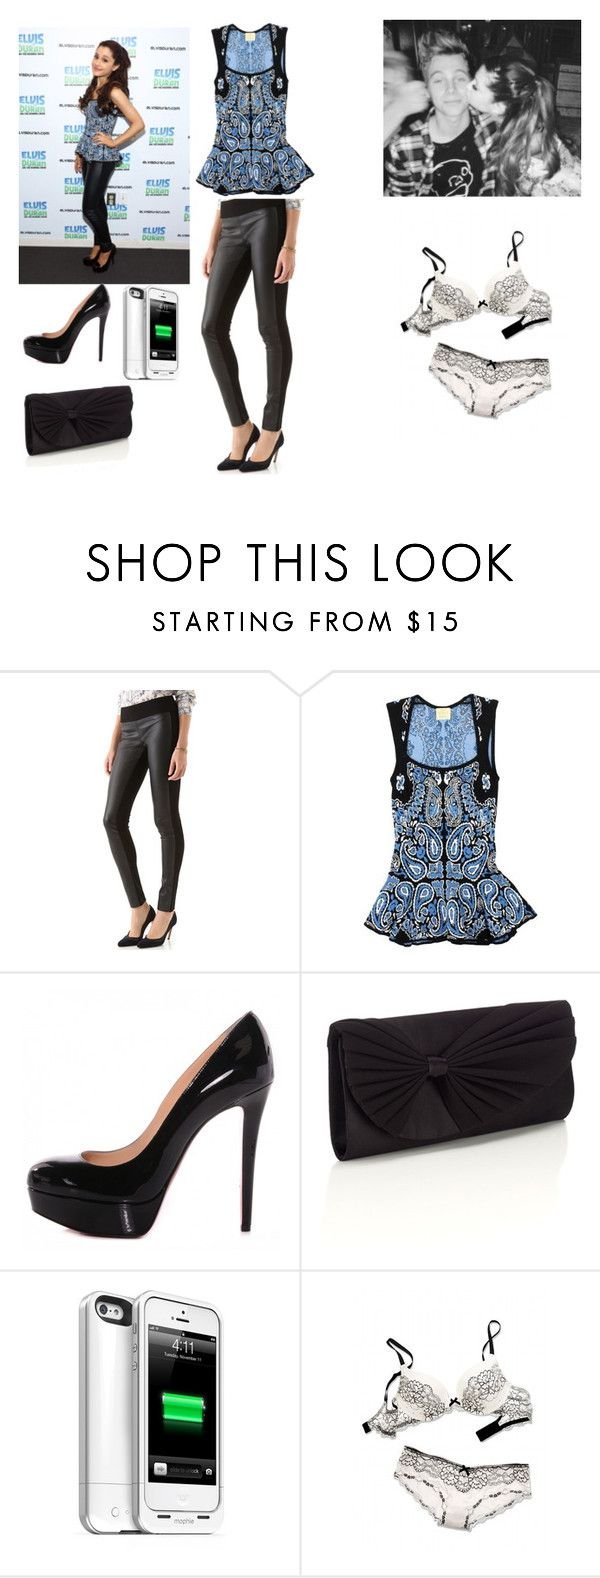 """""""Untitled #1332"""" by queenxpaige ❤ liked on Polyvore featuring Club Monaco, Torn by Ronny Kobo, Christian Louboutin, Accessorize, Mophie and Victoria's Secret"""